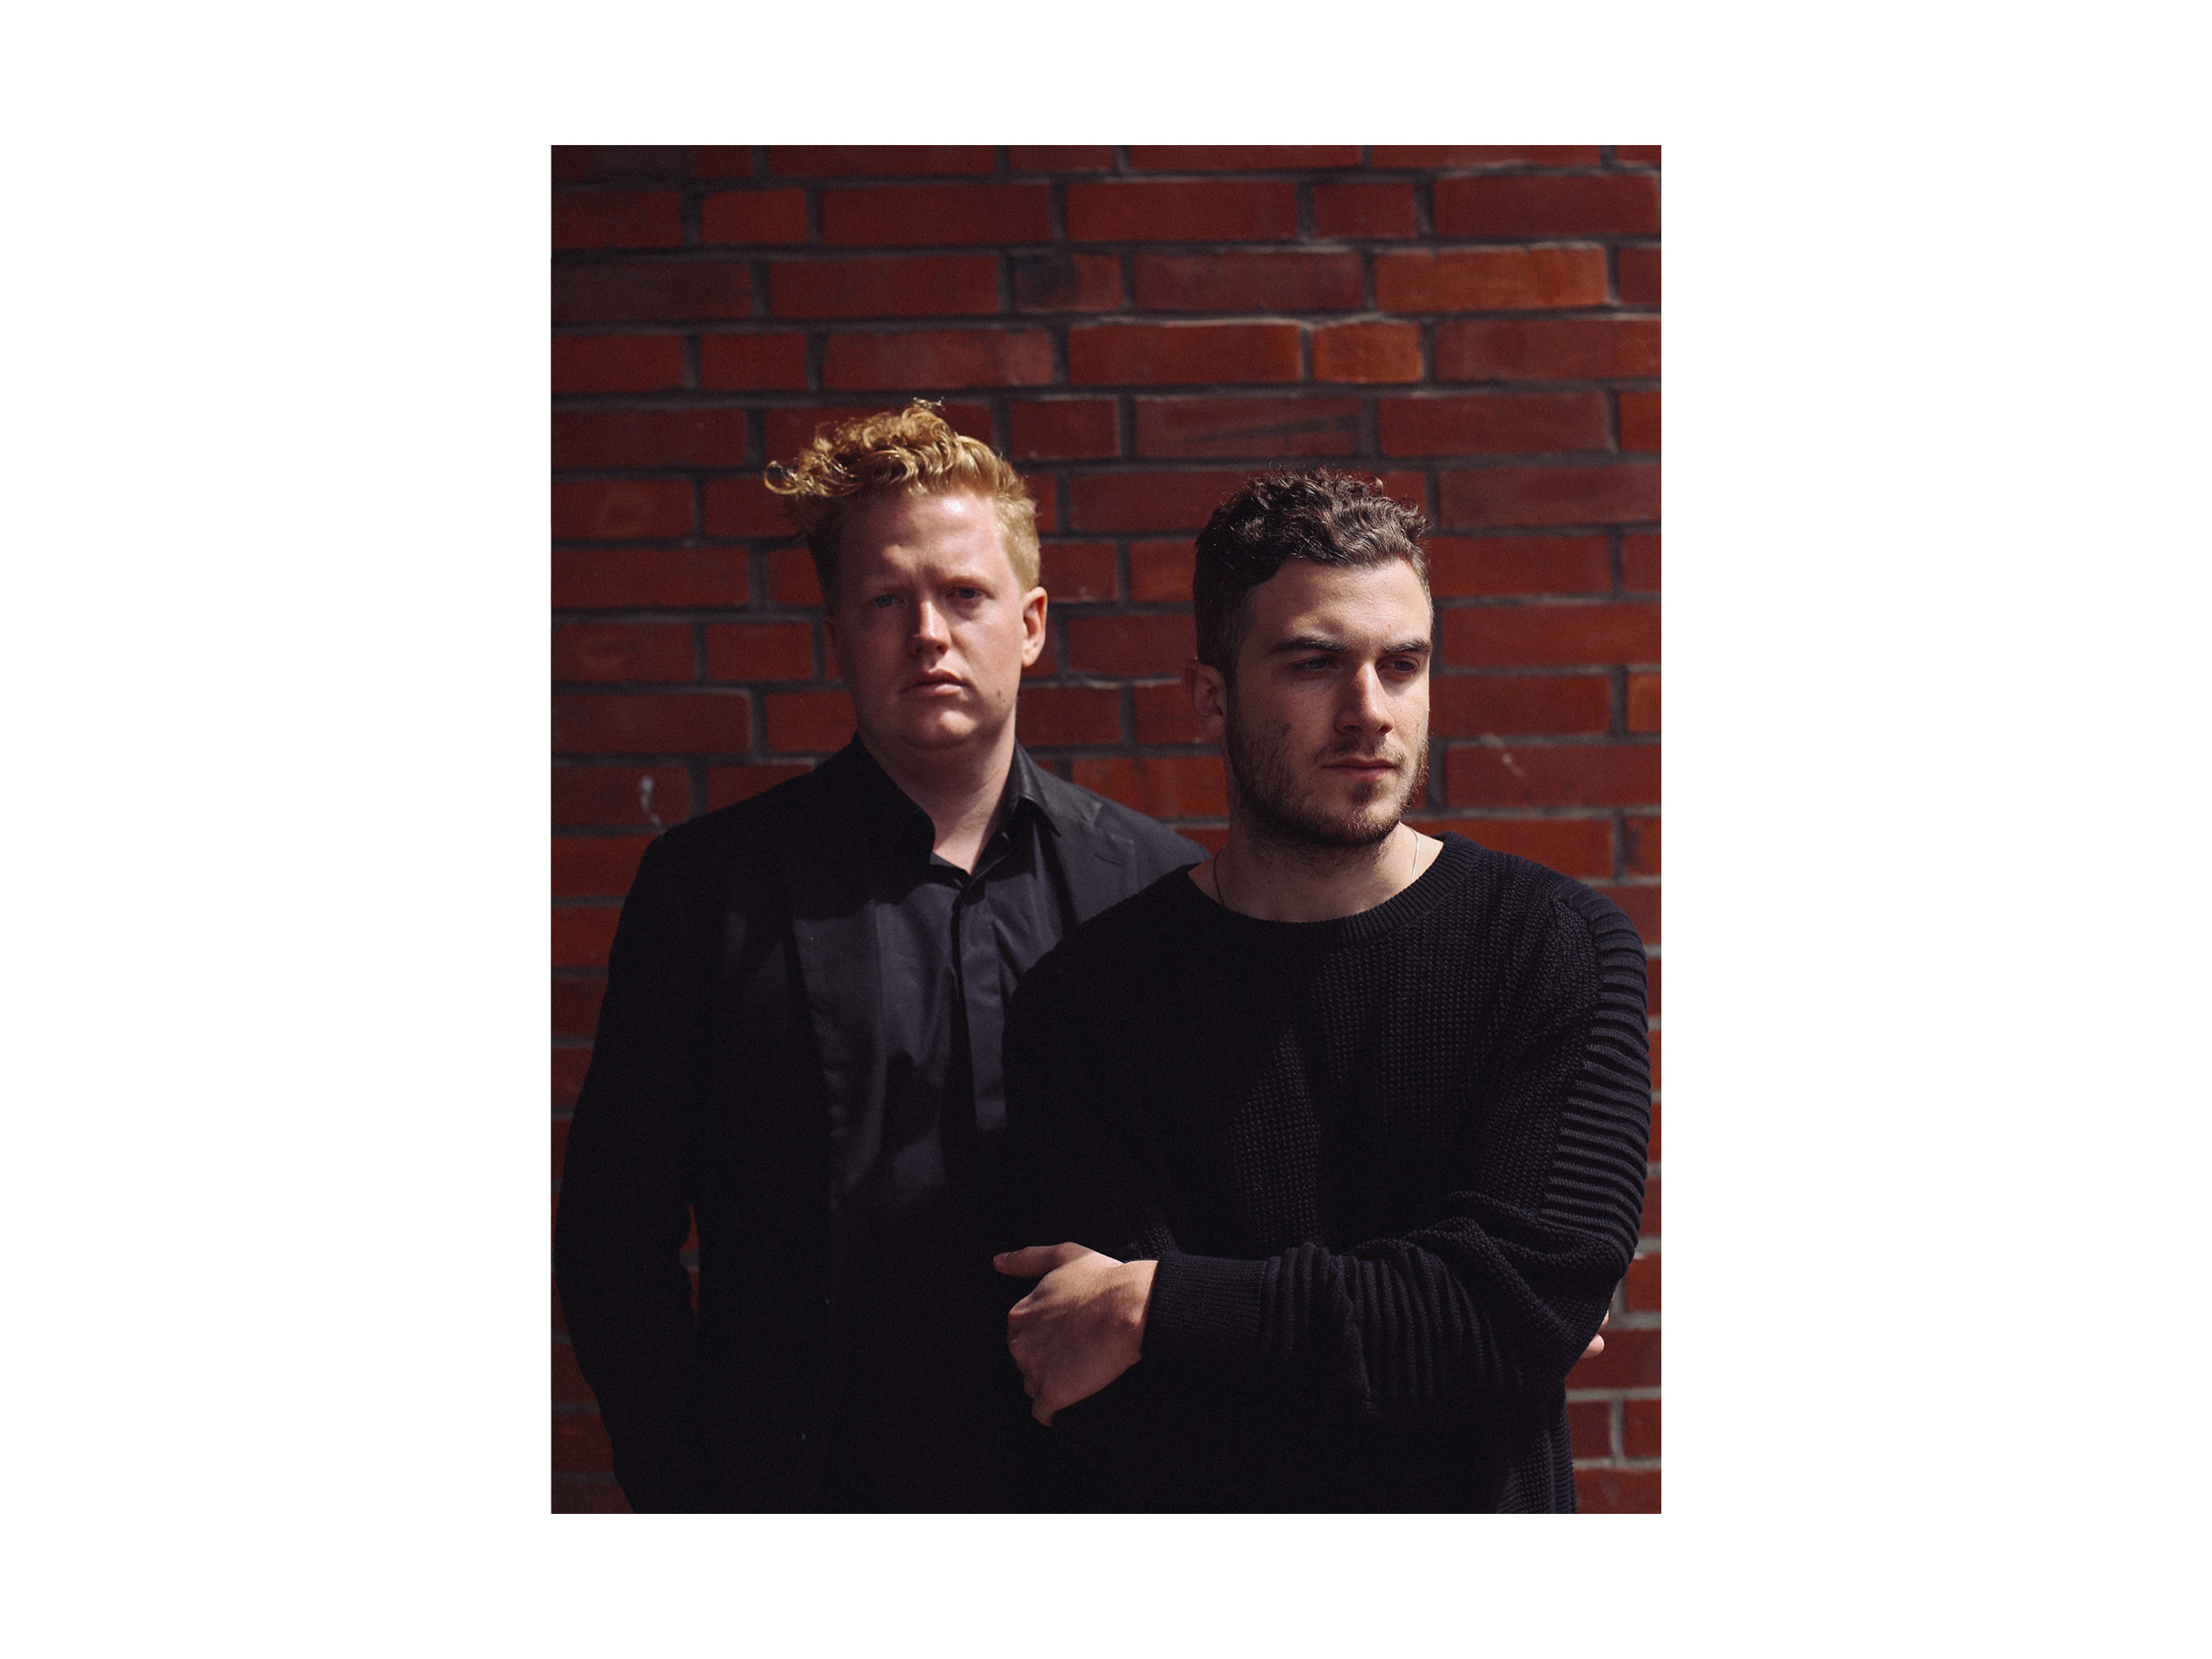 Dave Harrington and Nicolas Jaar, 2014, Berlin  Klok Magazine Issue 7